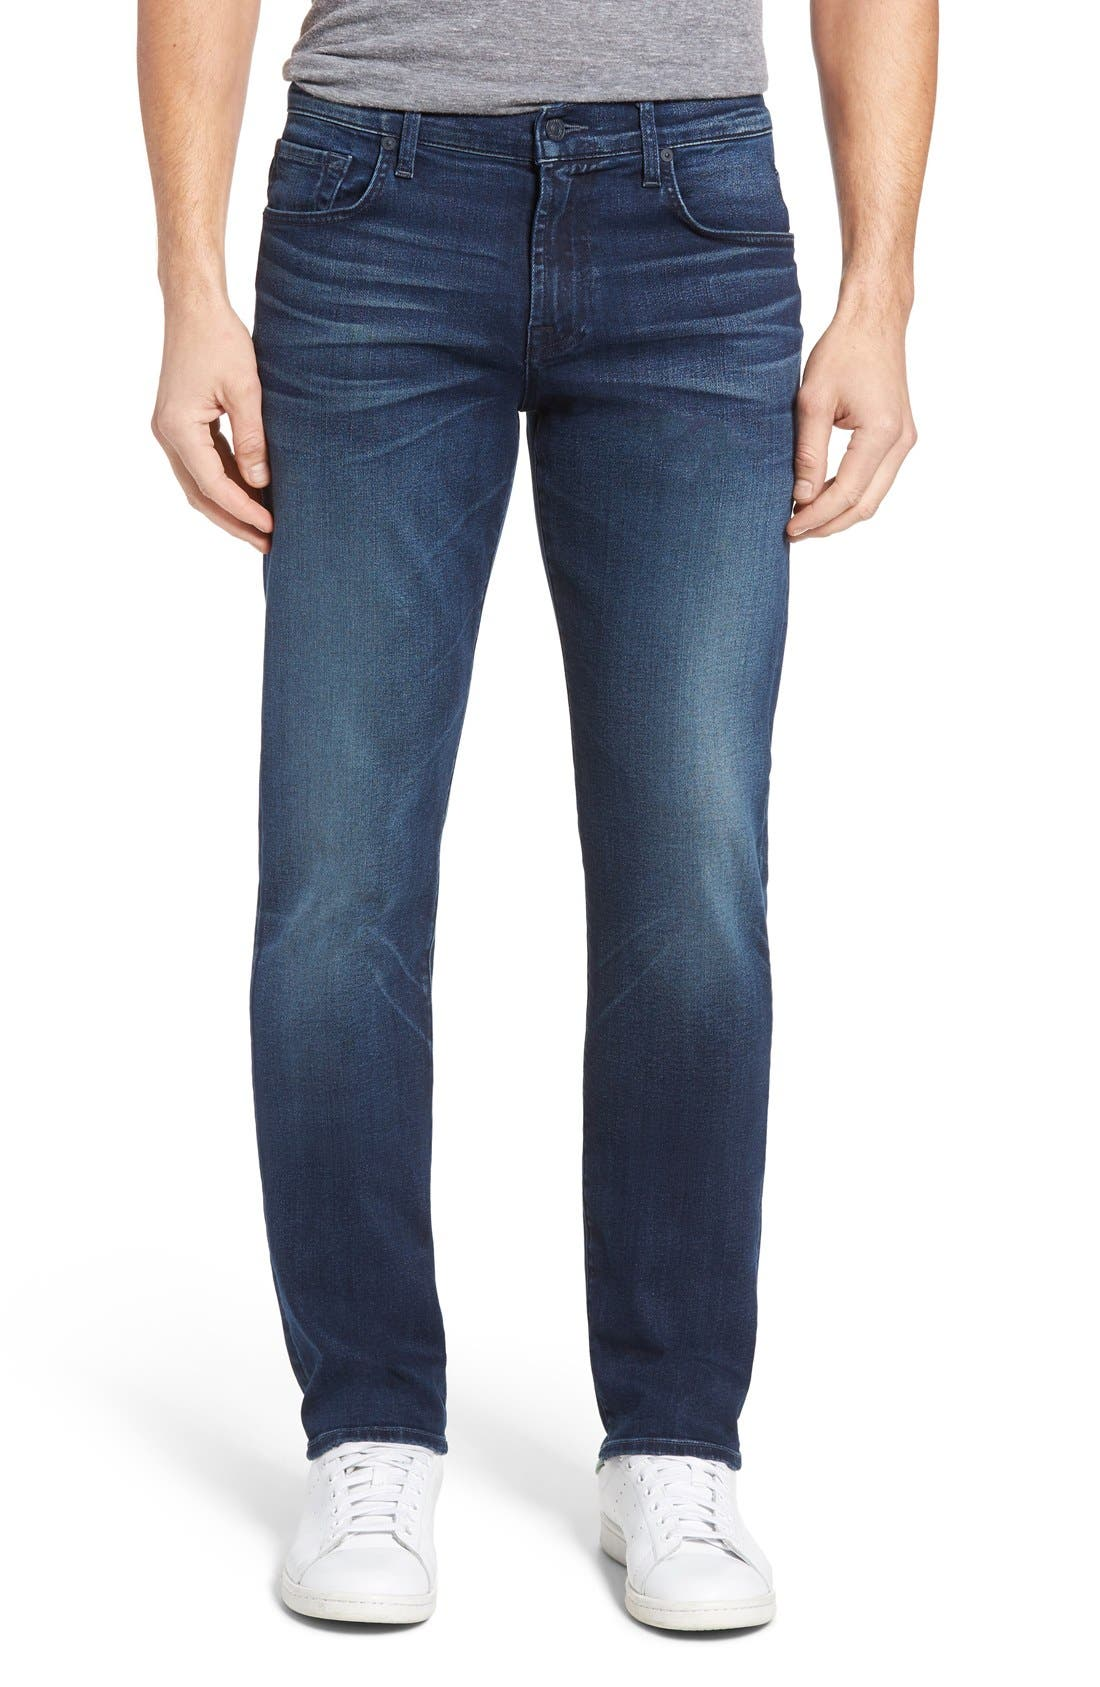 Alternate Image 1 Selected - 7 For All Mankind® Slimmy Luxe Performance Slim Fit Jeans (Belfast)